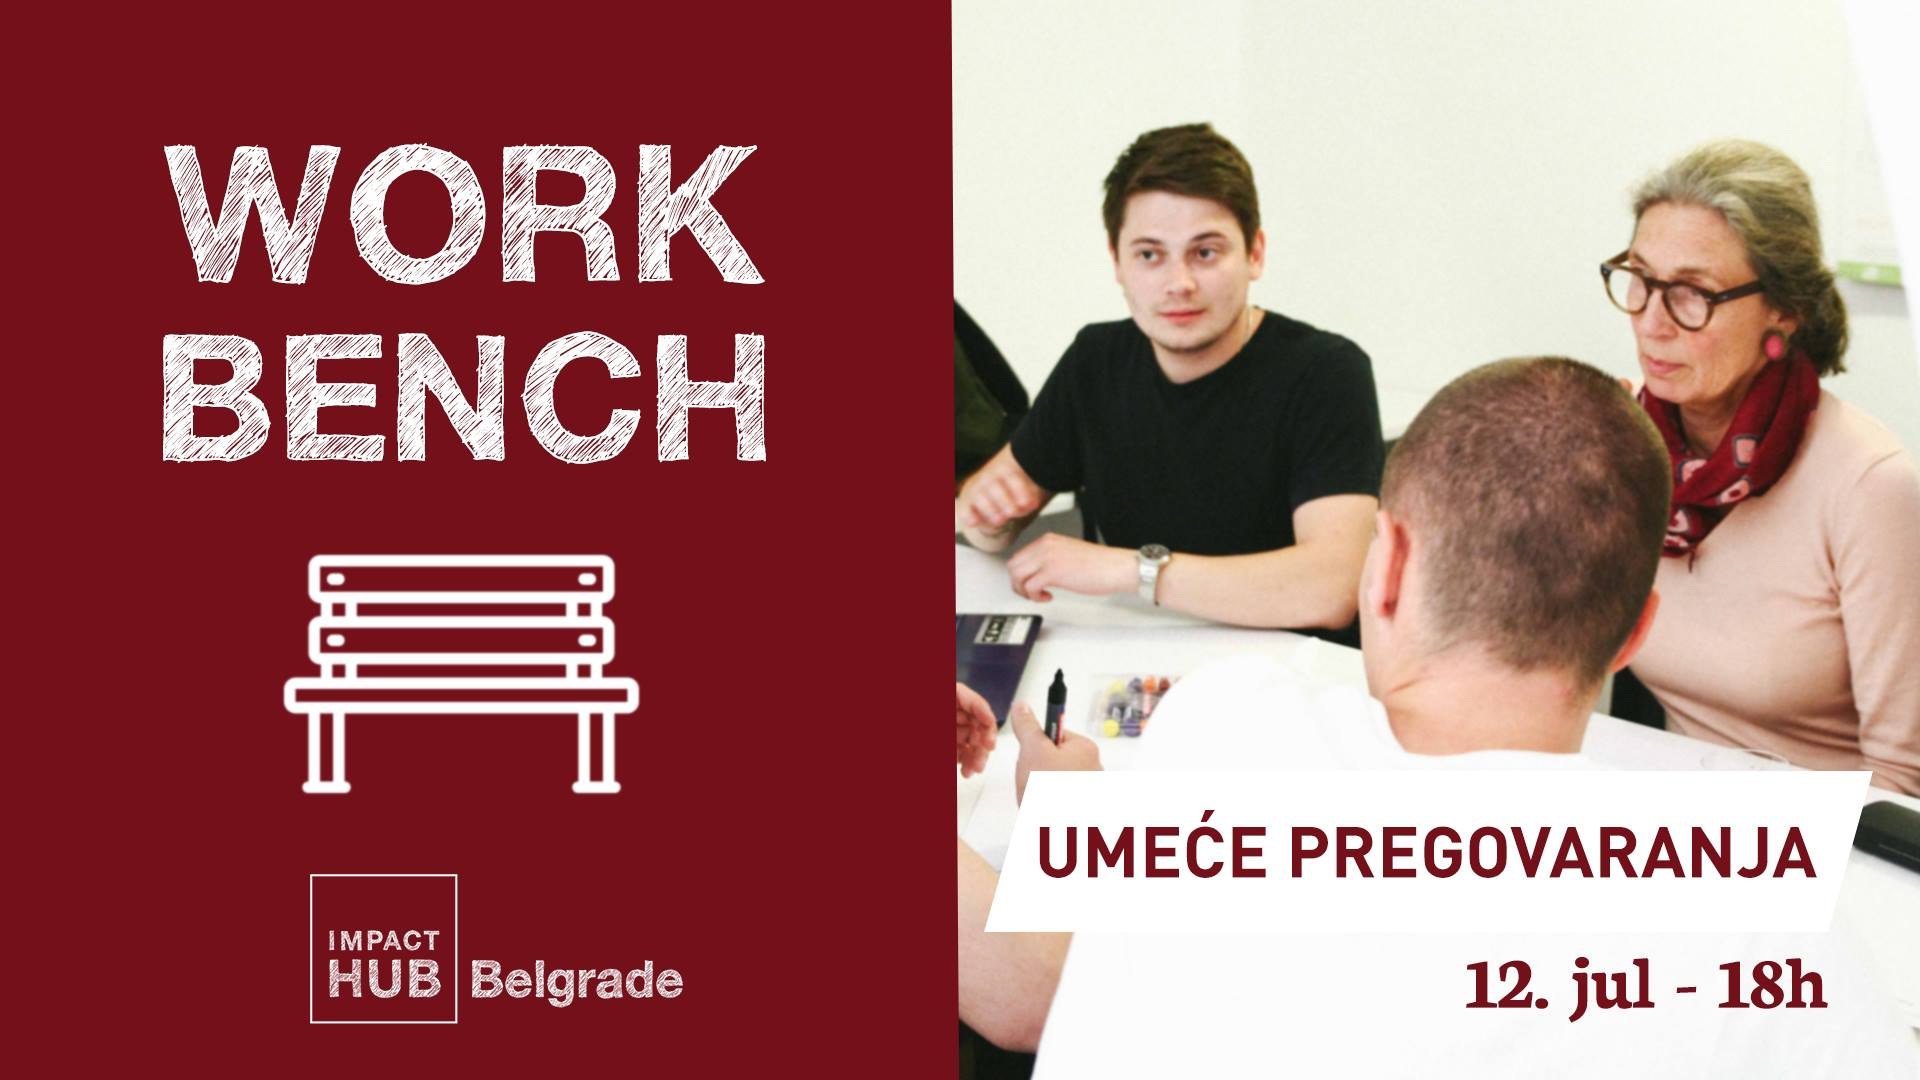 12.jul - Workbench - Umeće pregovaranja